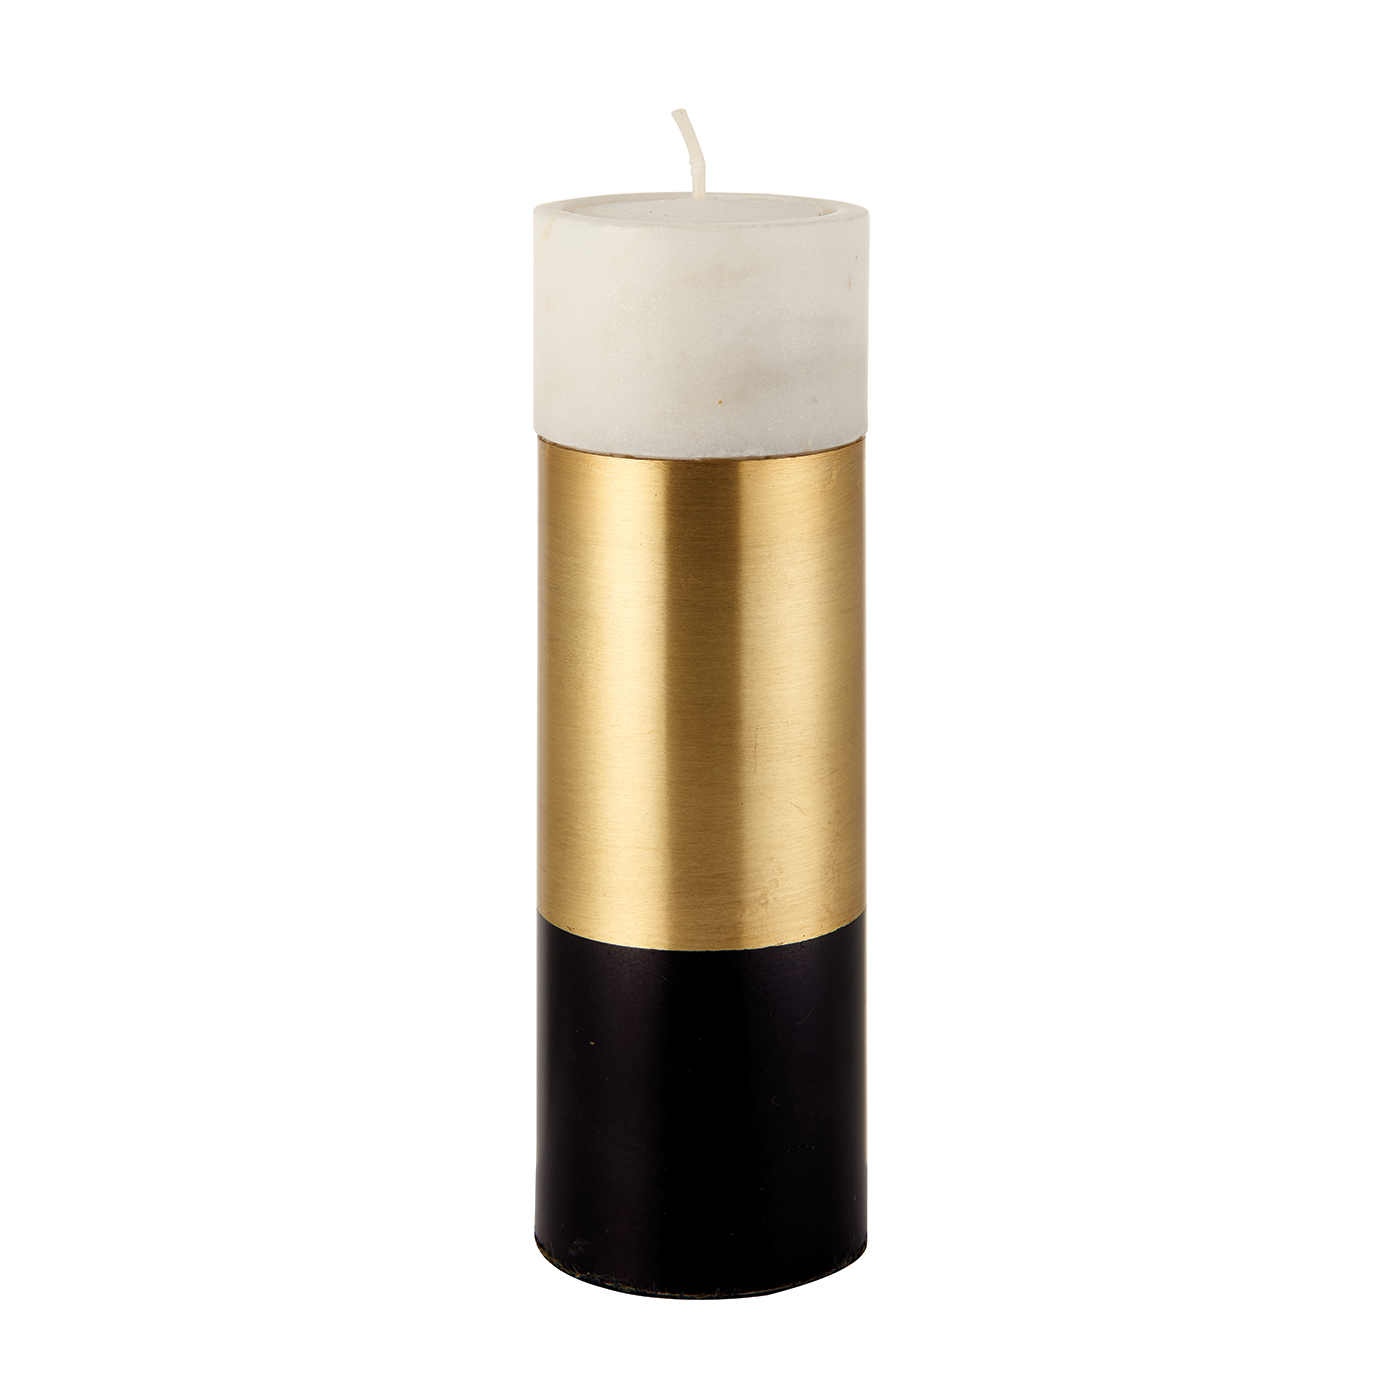 Endon Passo large tealight holder White marble & satin brass 150mm H x 50mm dia Thumbnail 1